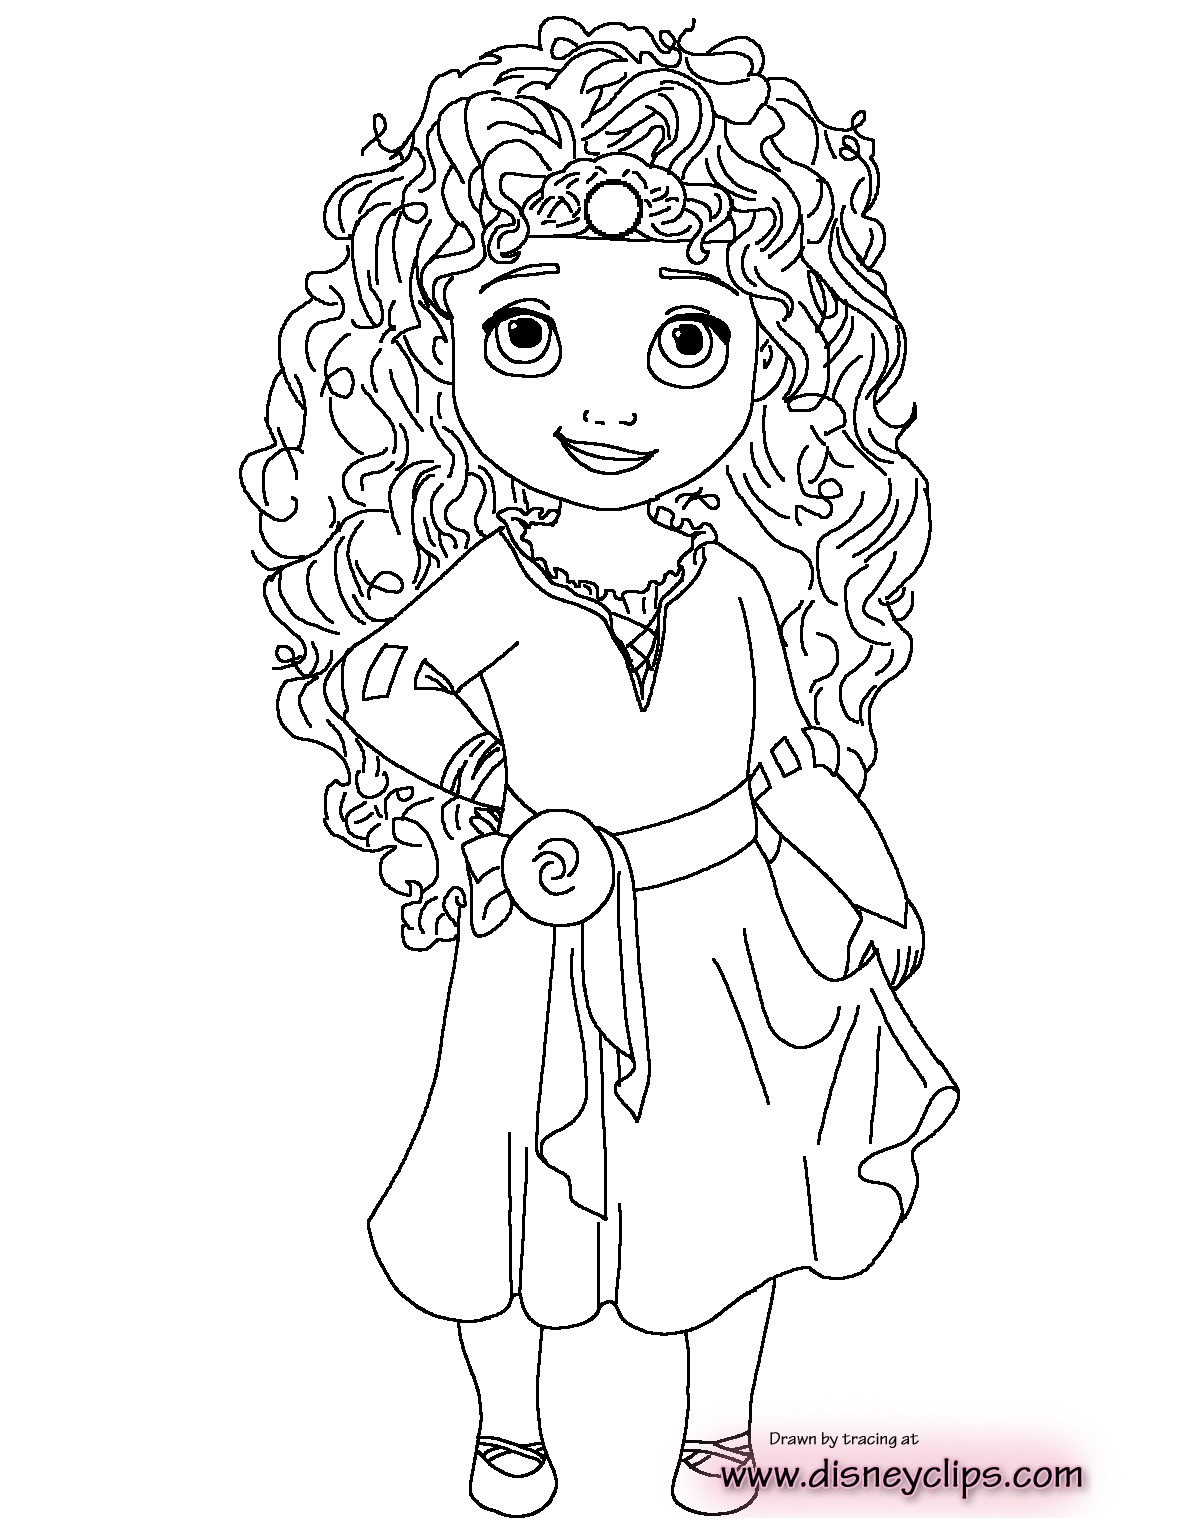 coloring-pages-of-baby-princess-of-coloring-pages-of-baby-princess Coloring Pages Of Baby Princess Cartoon